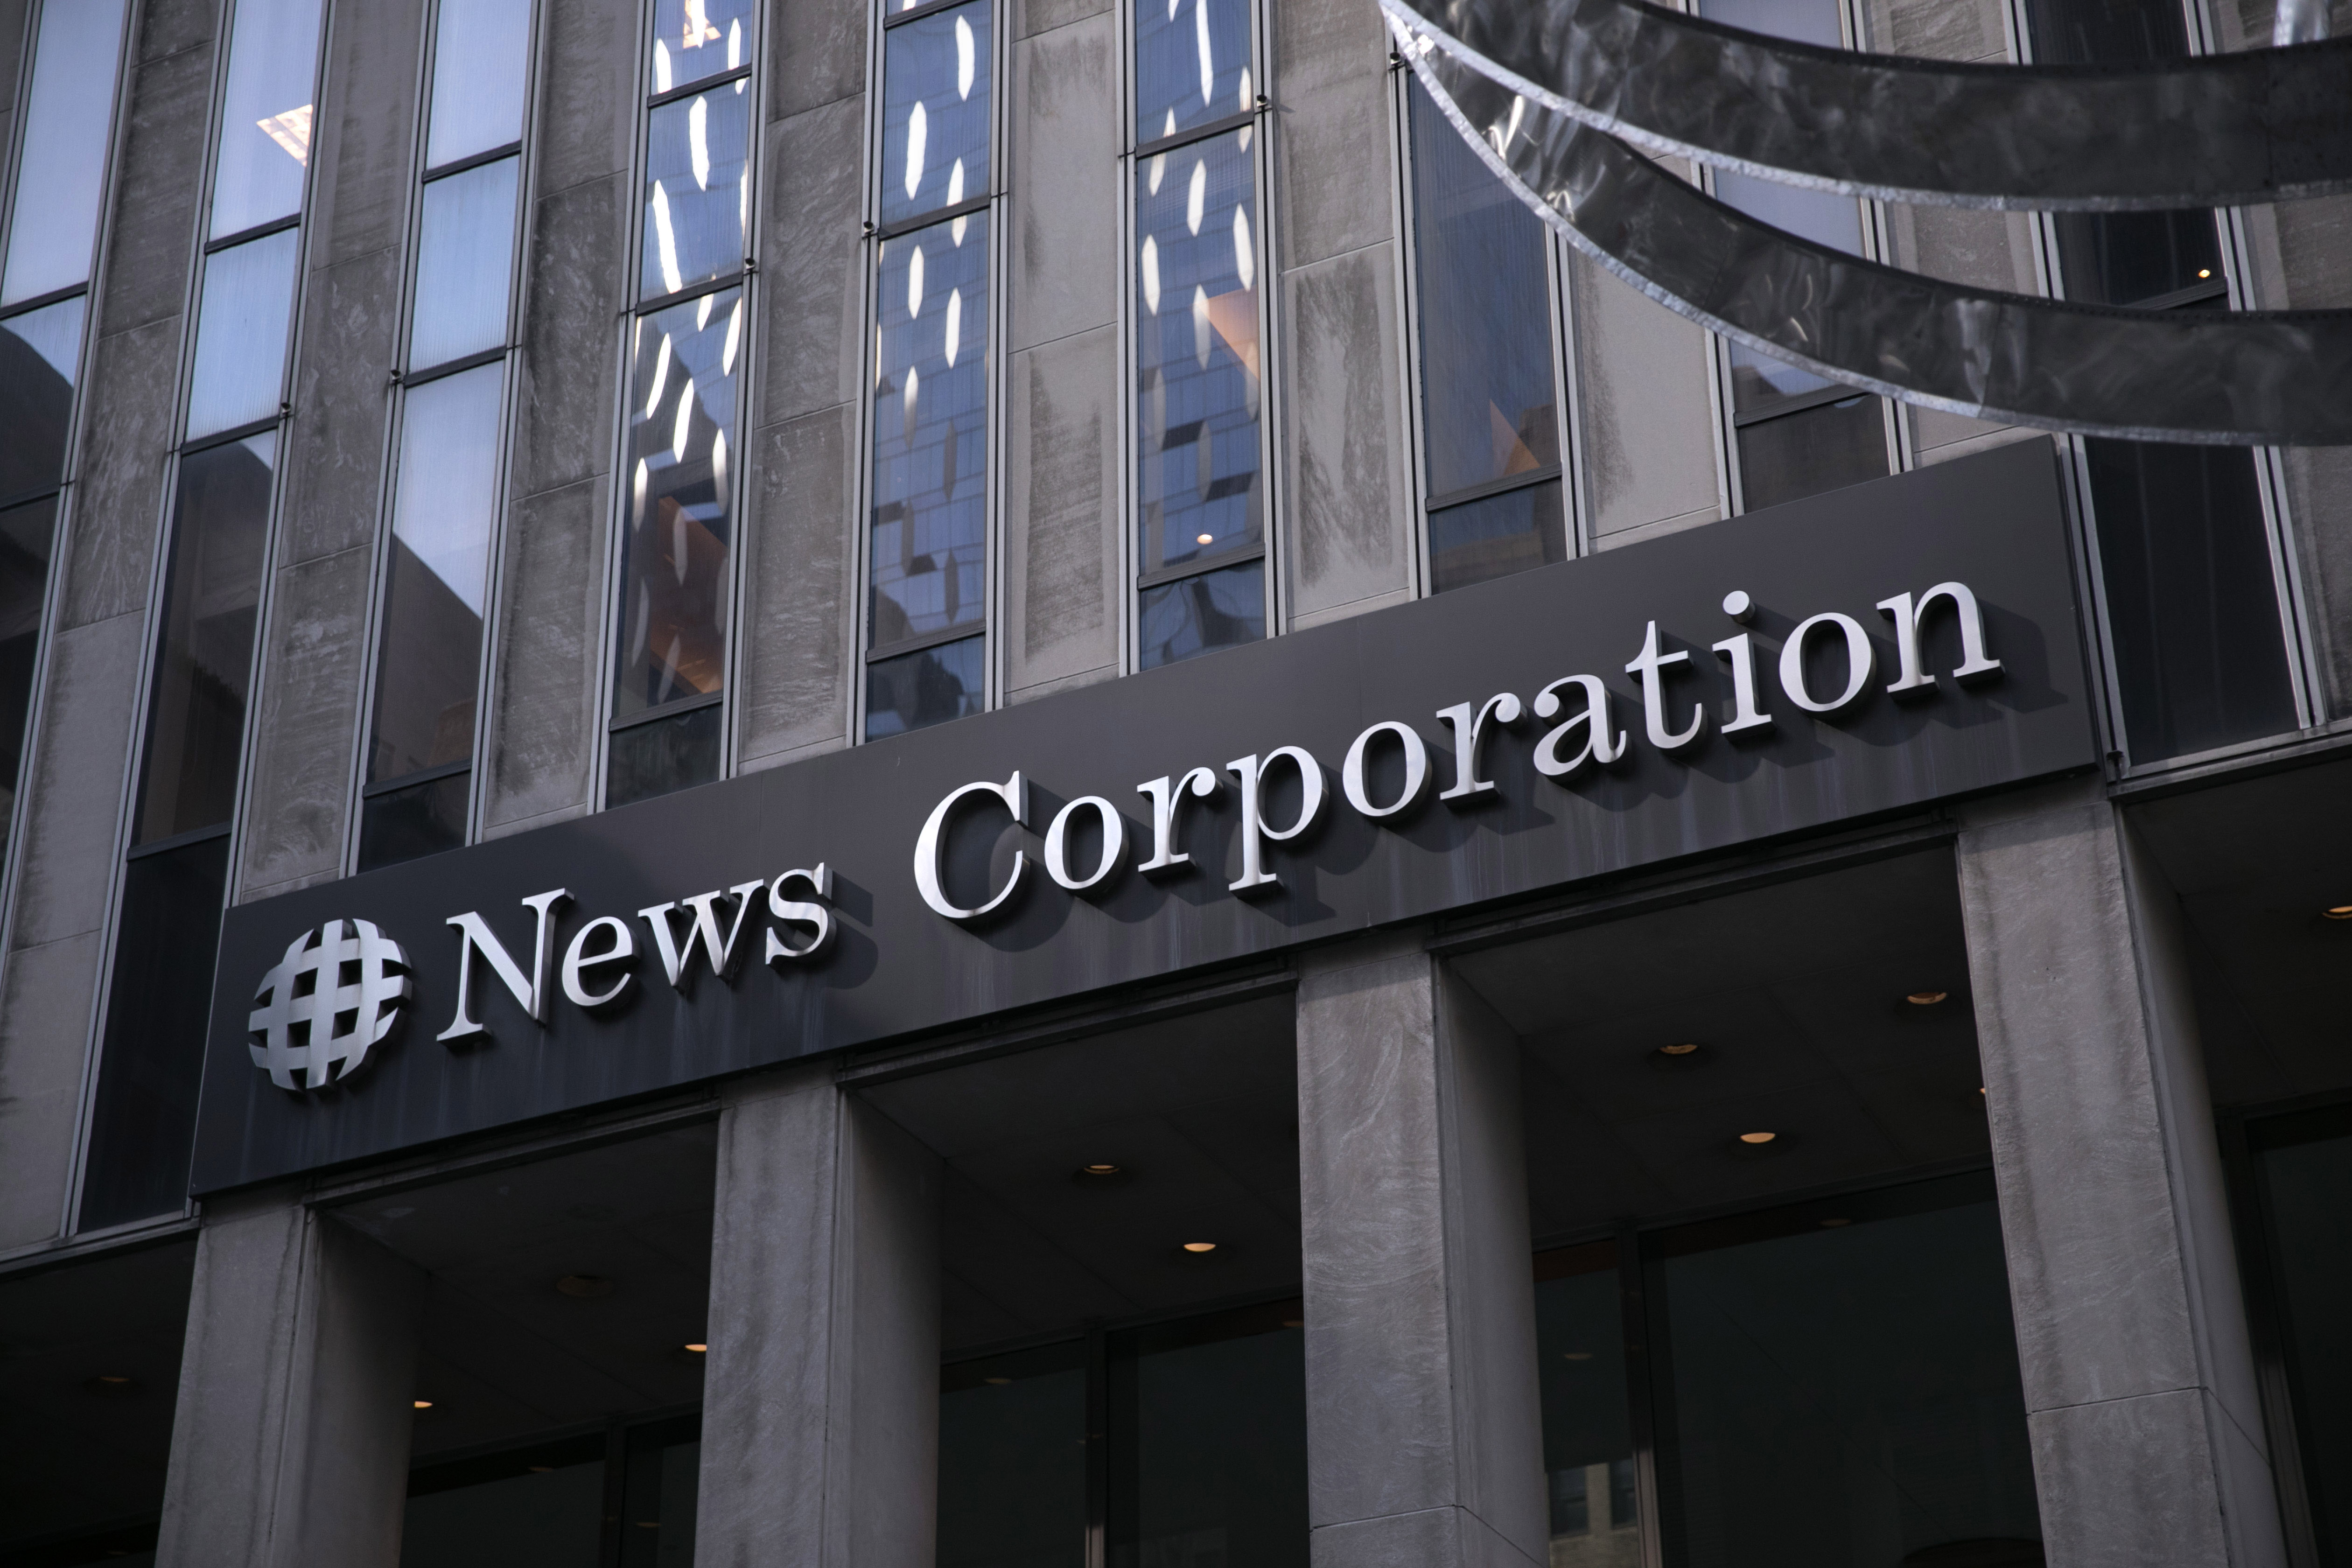 The News Corp building in New York, home to The Wall Street Journal, is pictured on March 20, 2019.